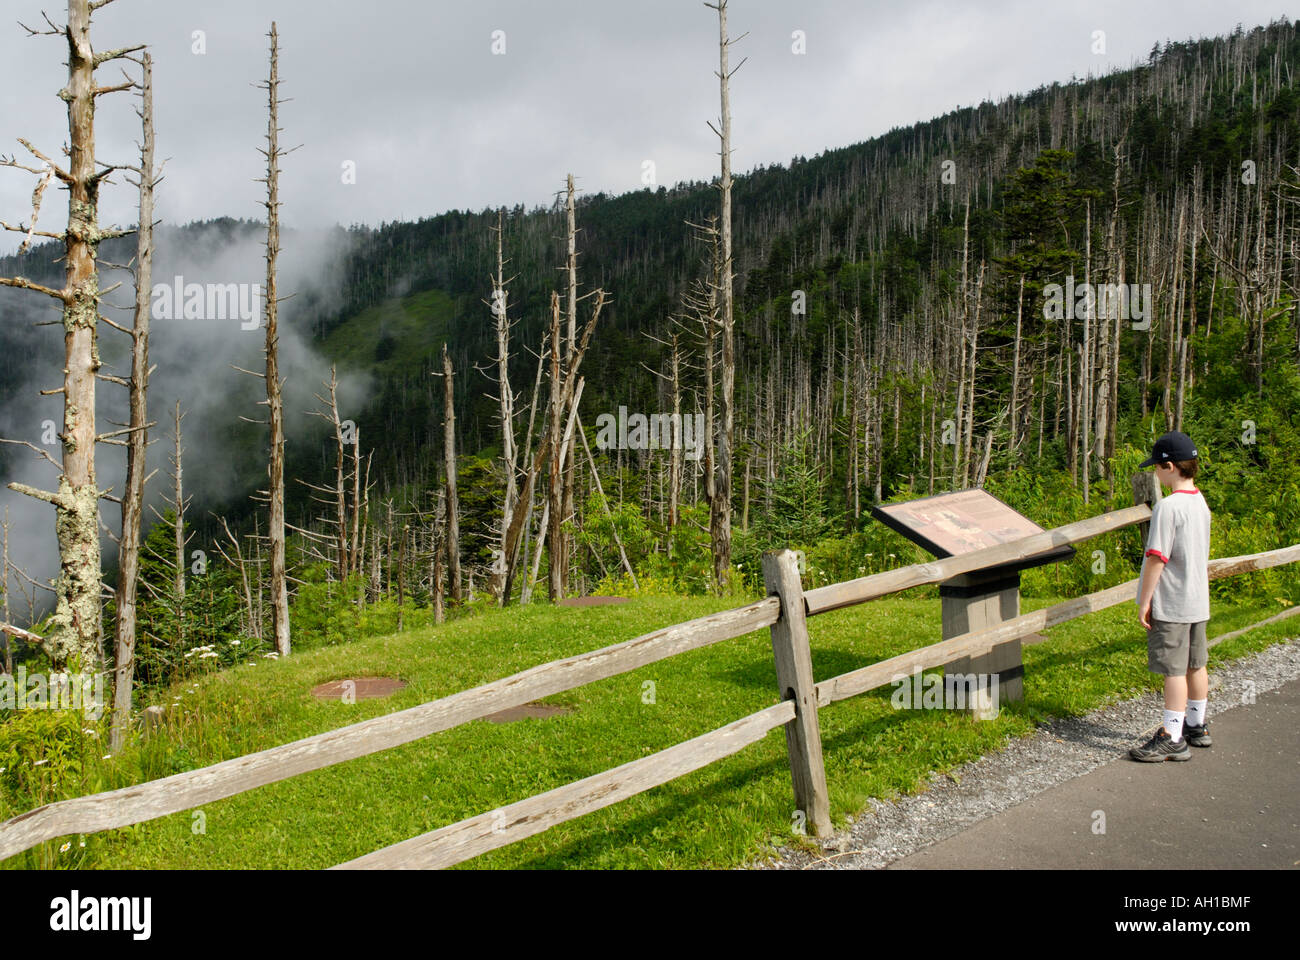 Boy reading interpretive sign on Clingman's Dome Trail, Great Smoky Mountains National Park - Stock Image